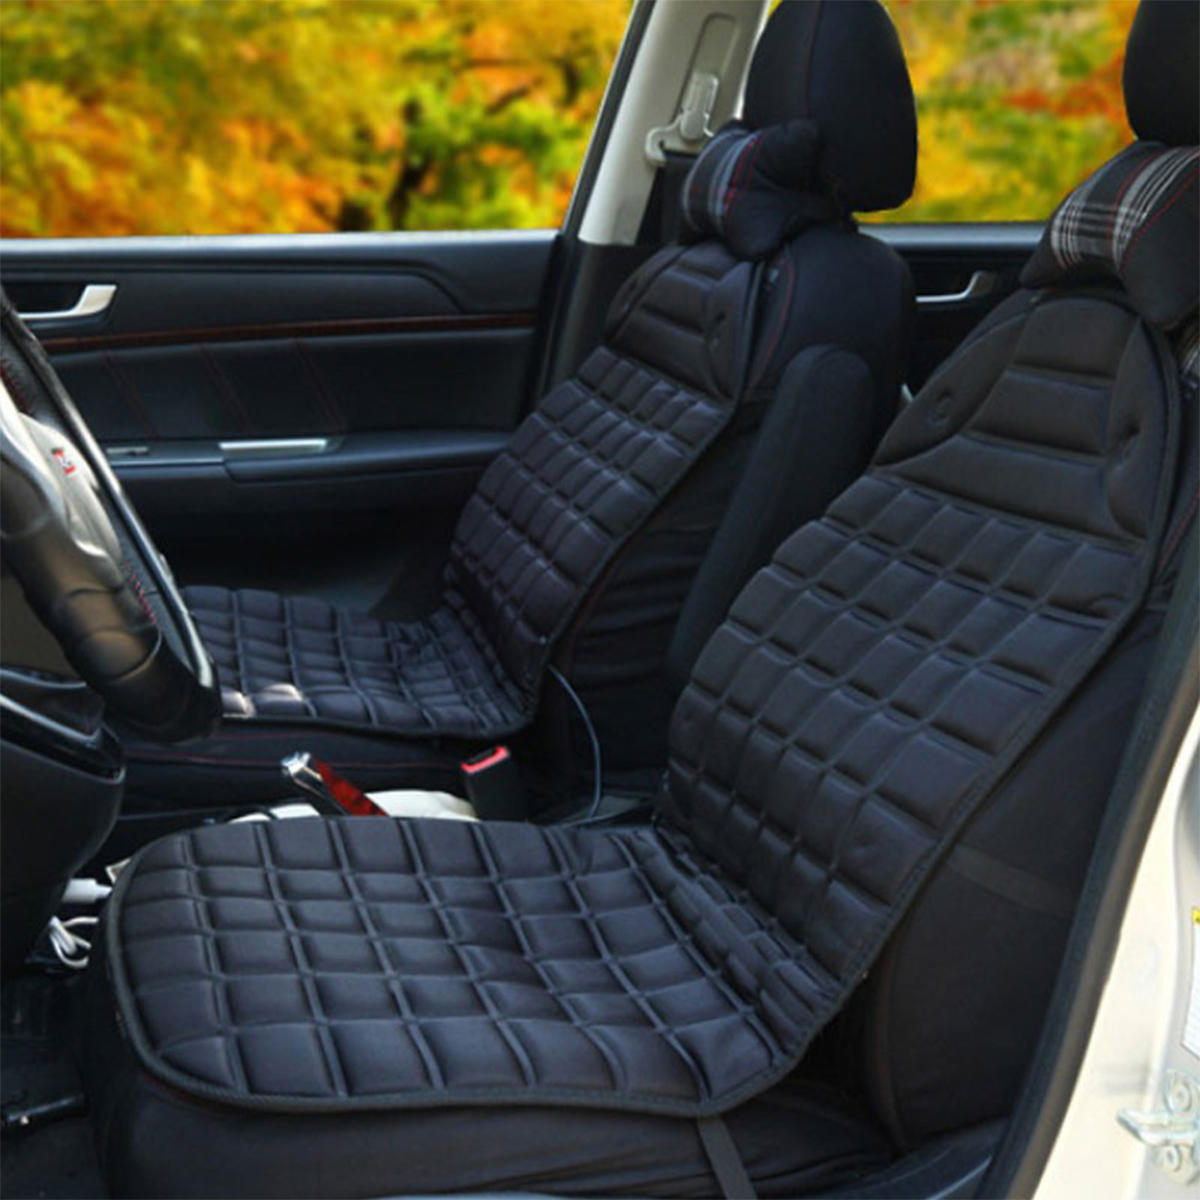 12v 30w Polyester Car Front Seat Heated Cushion Warmer Winter Household Cover Electric Mat Cod